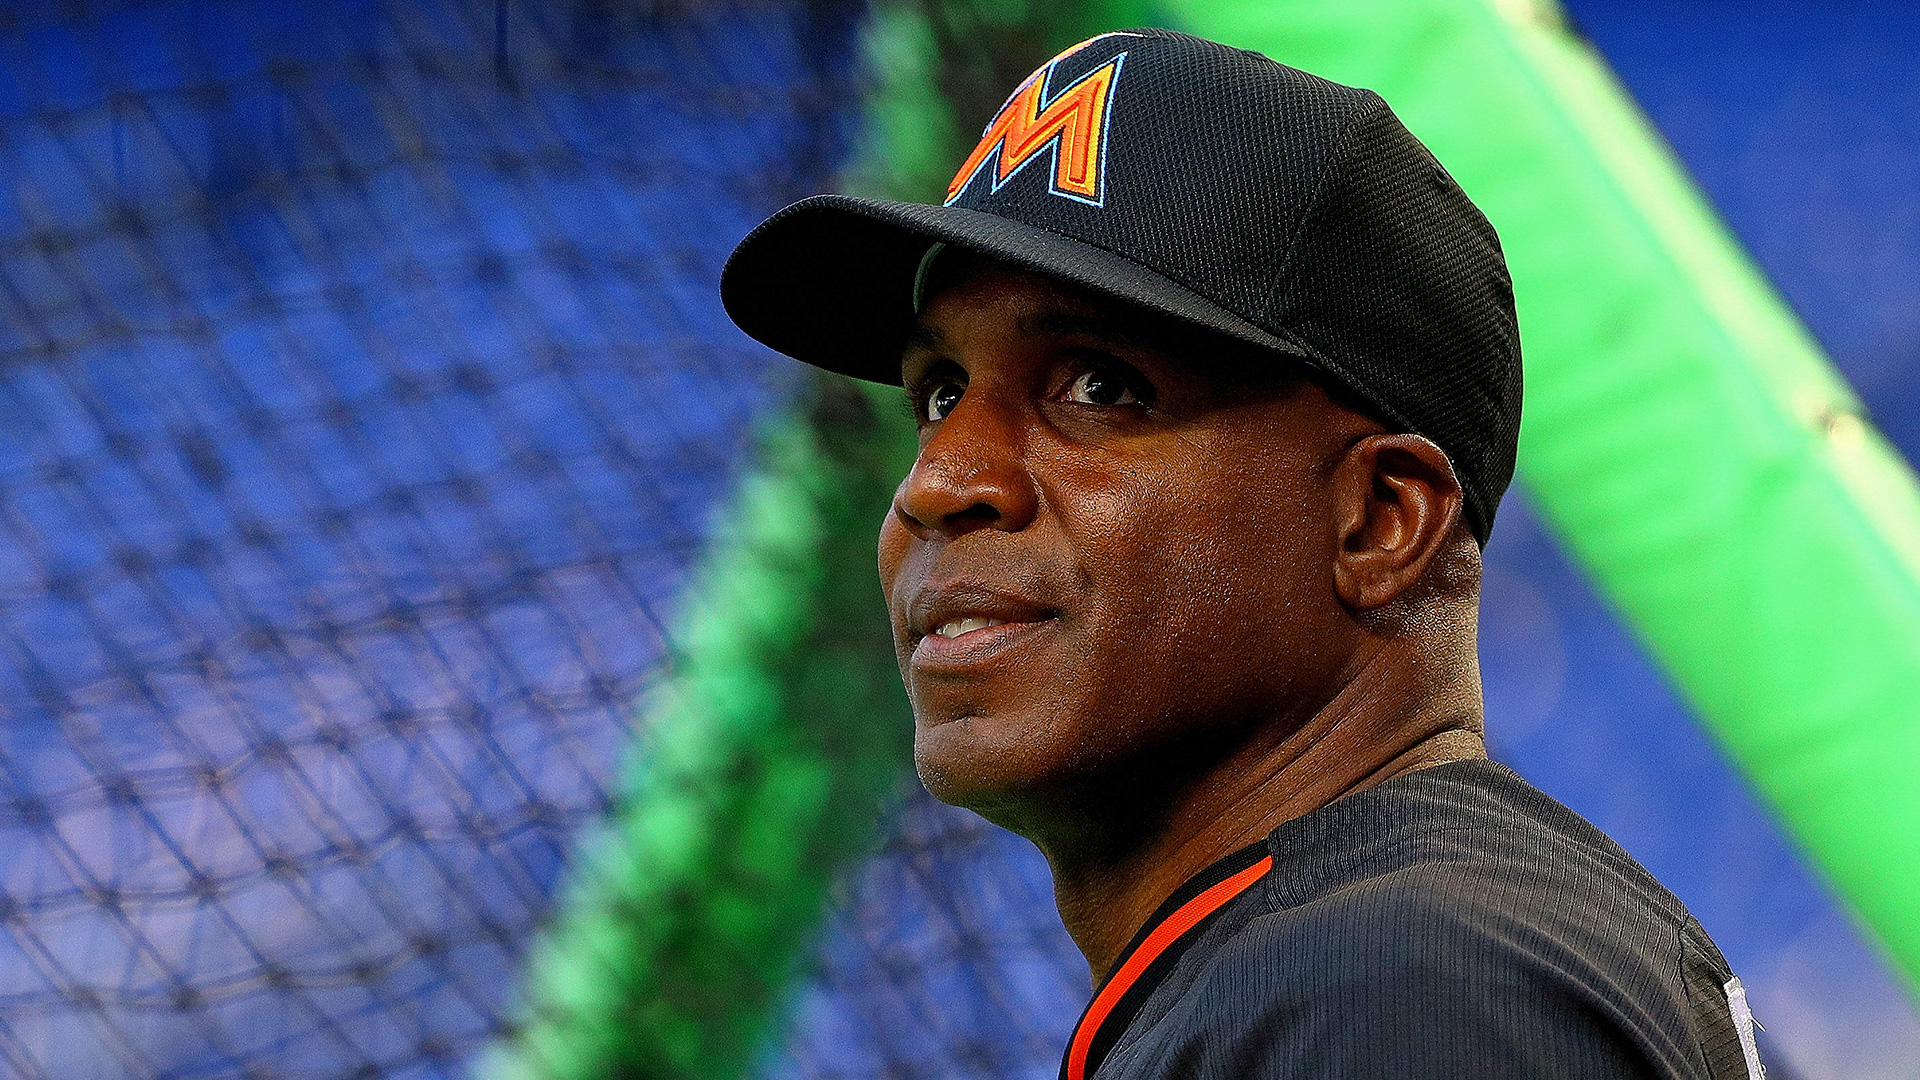 Barry-bonds-041816-getty-ftrjpg_k5fbwmap9i0u1iwxsrxhrc64l